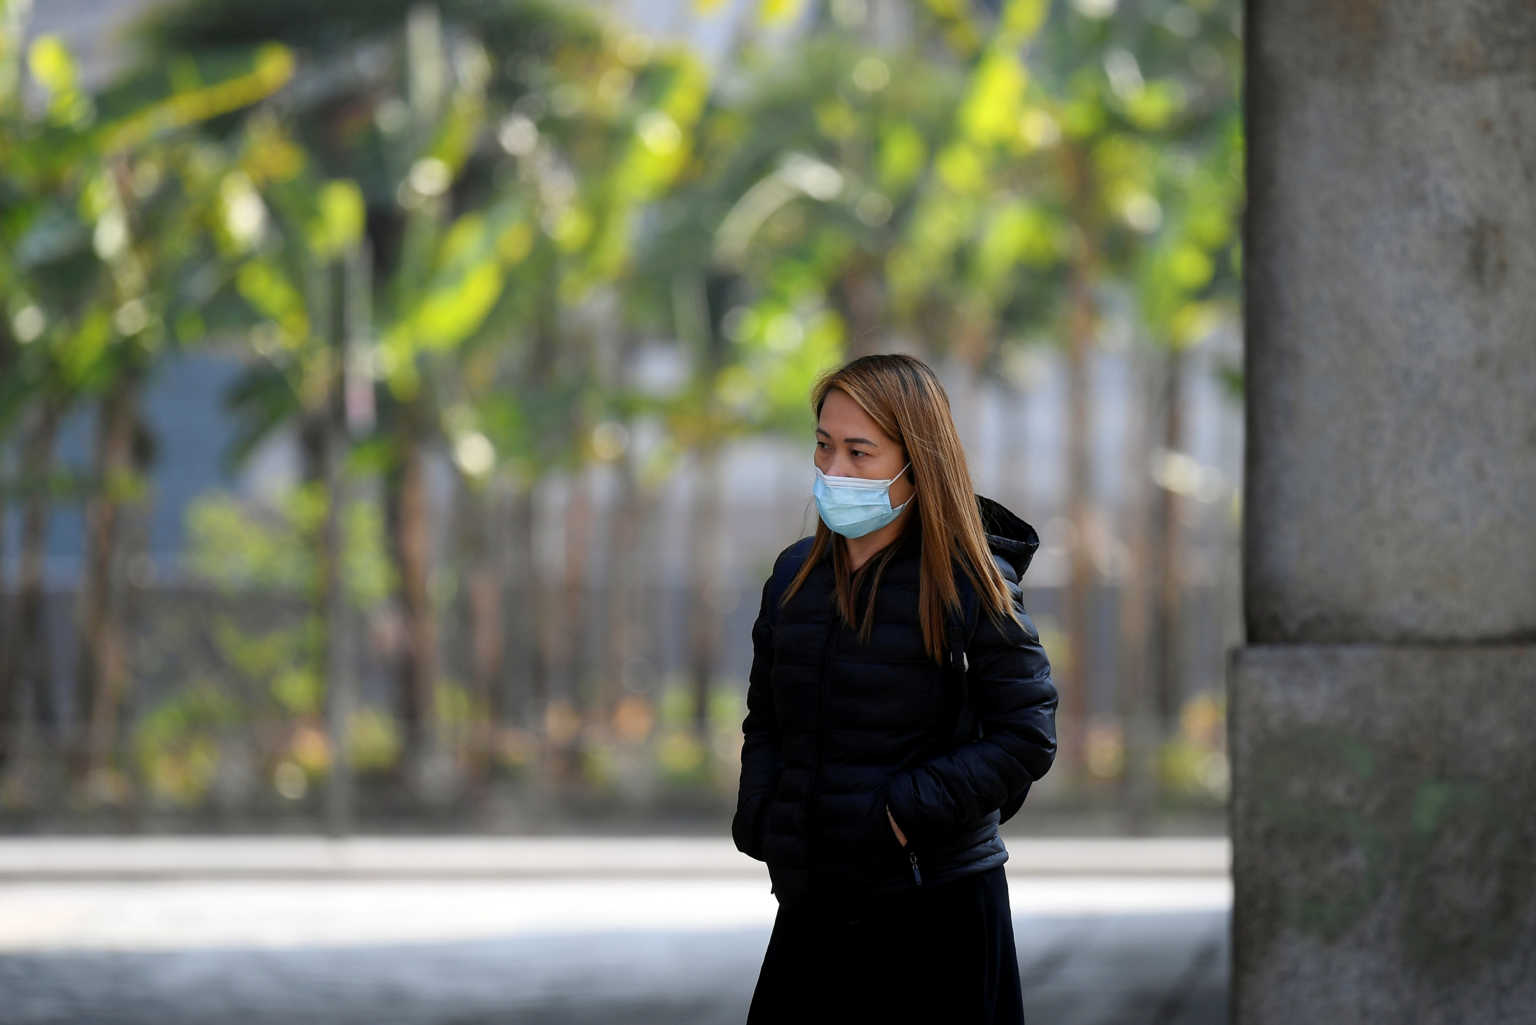 A woman wearing a protective mask walks, as the spread of coronavirus disease (COVID-19) continues, in Milan, Italy April 4, 2020. REUTERS/Daniele Mascolo